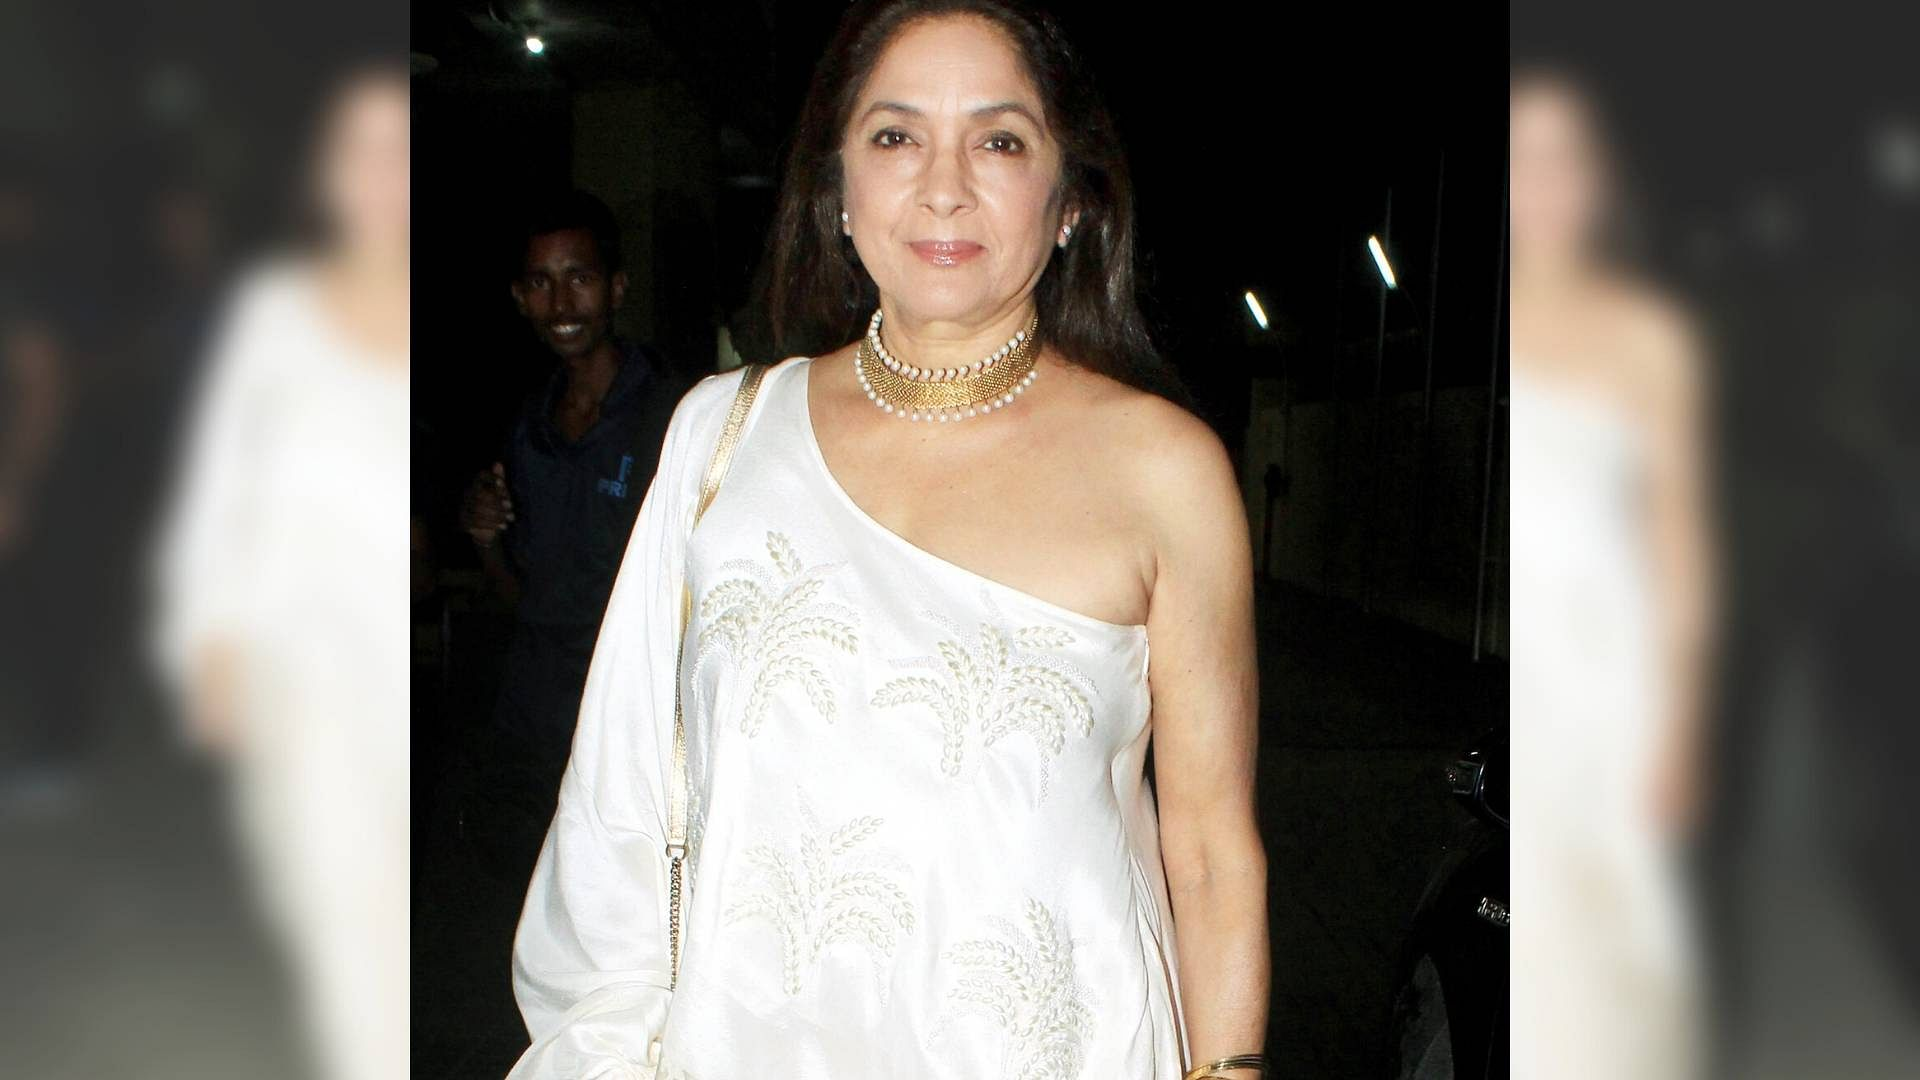 'Mera Time Aagya': Neena Gupta Recites Poem Reflecting on Career